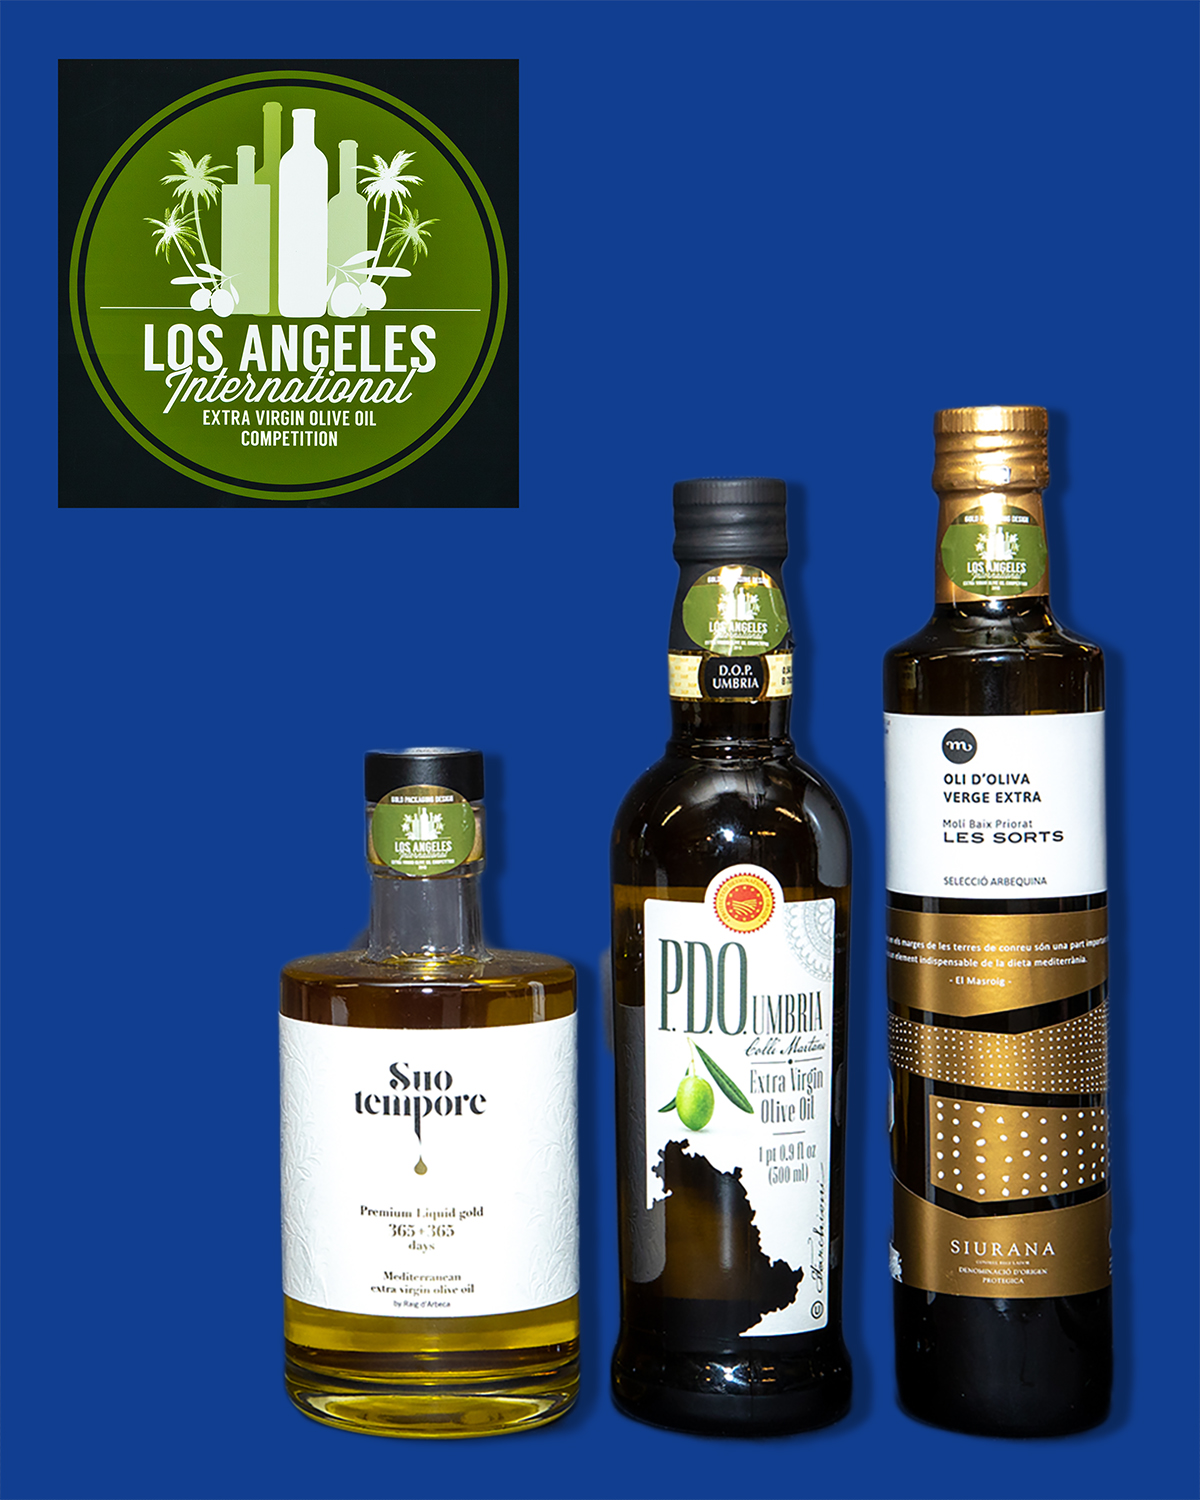 2019 LA International Olive Oil Gold Packaging - Design Standard